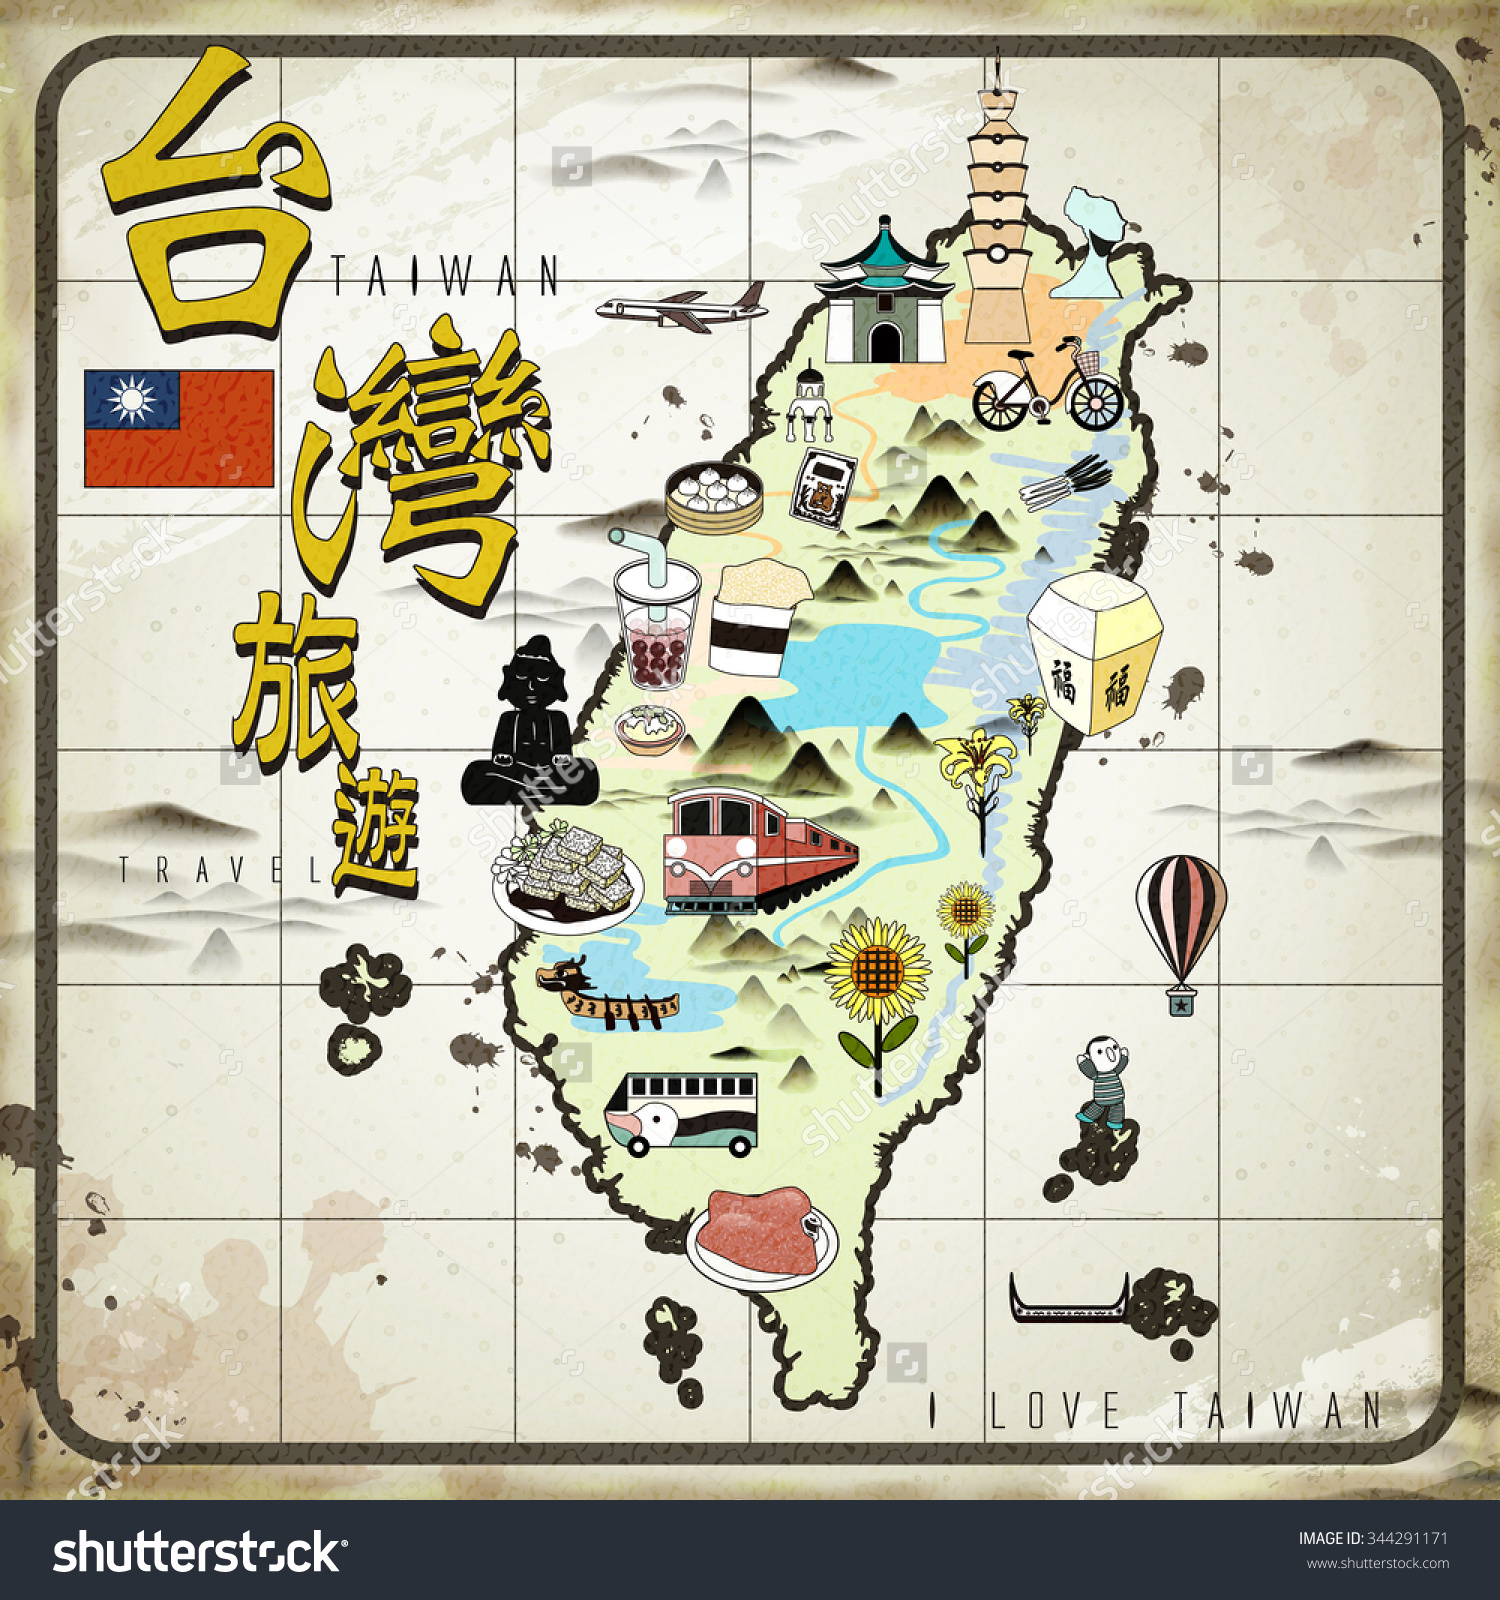 Taiwan Travel Map Taiwan Travel Chinese Illustration – Taiwan Map For Tourist